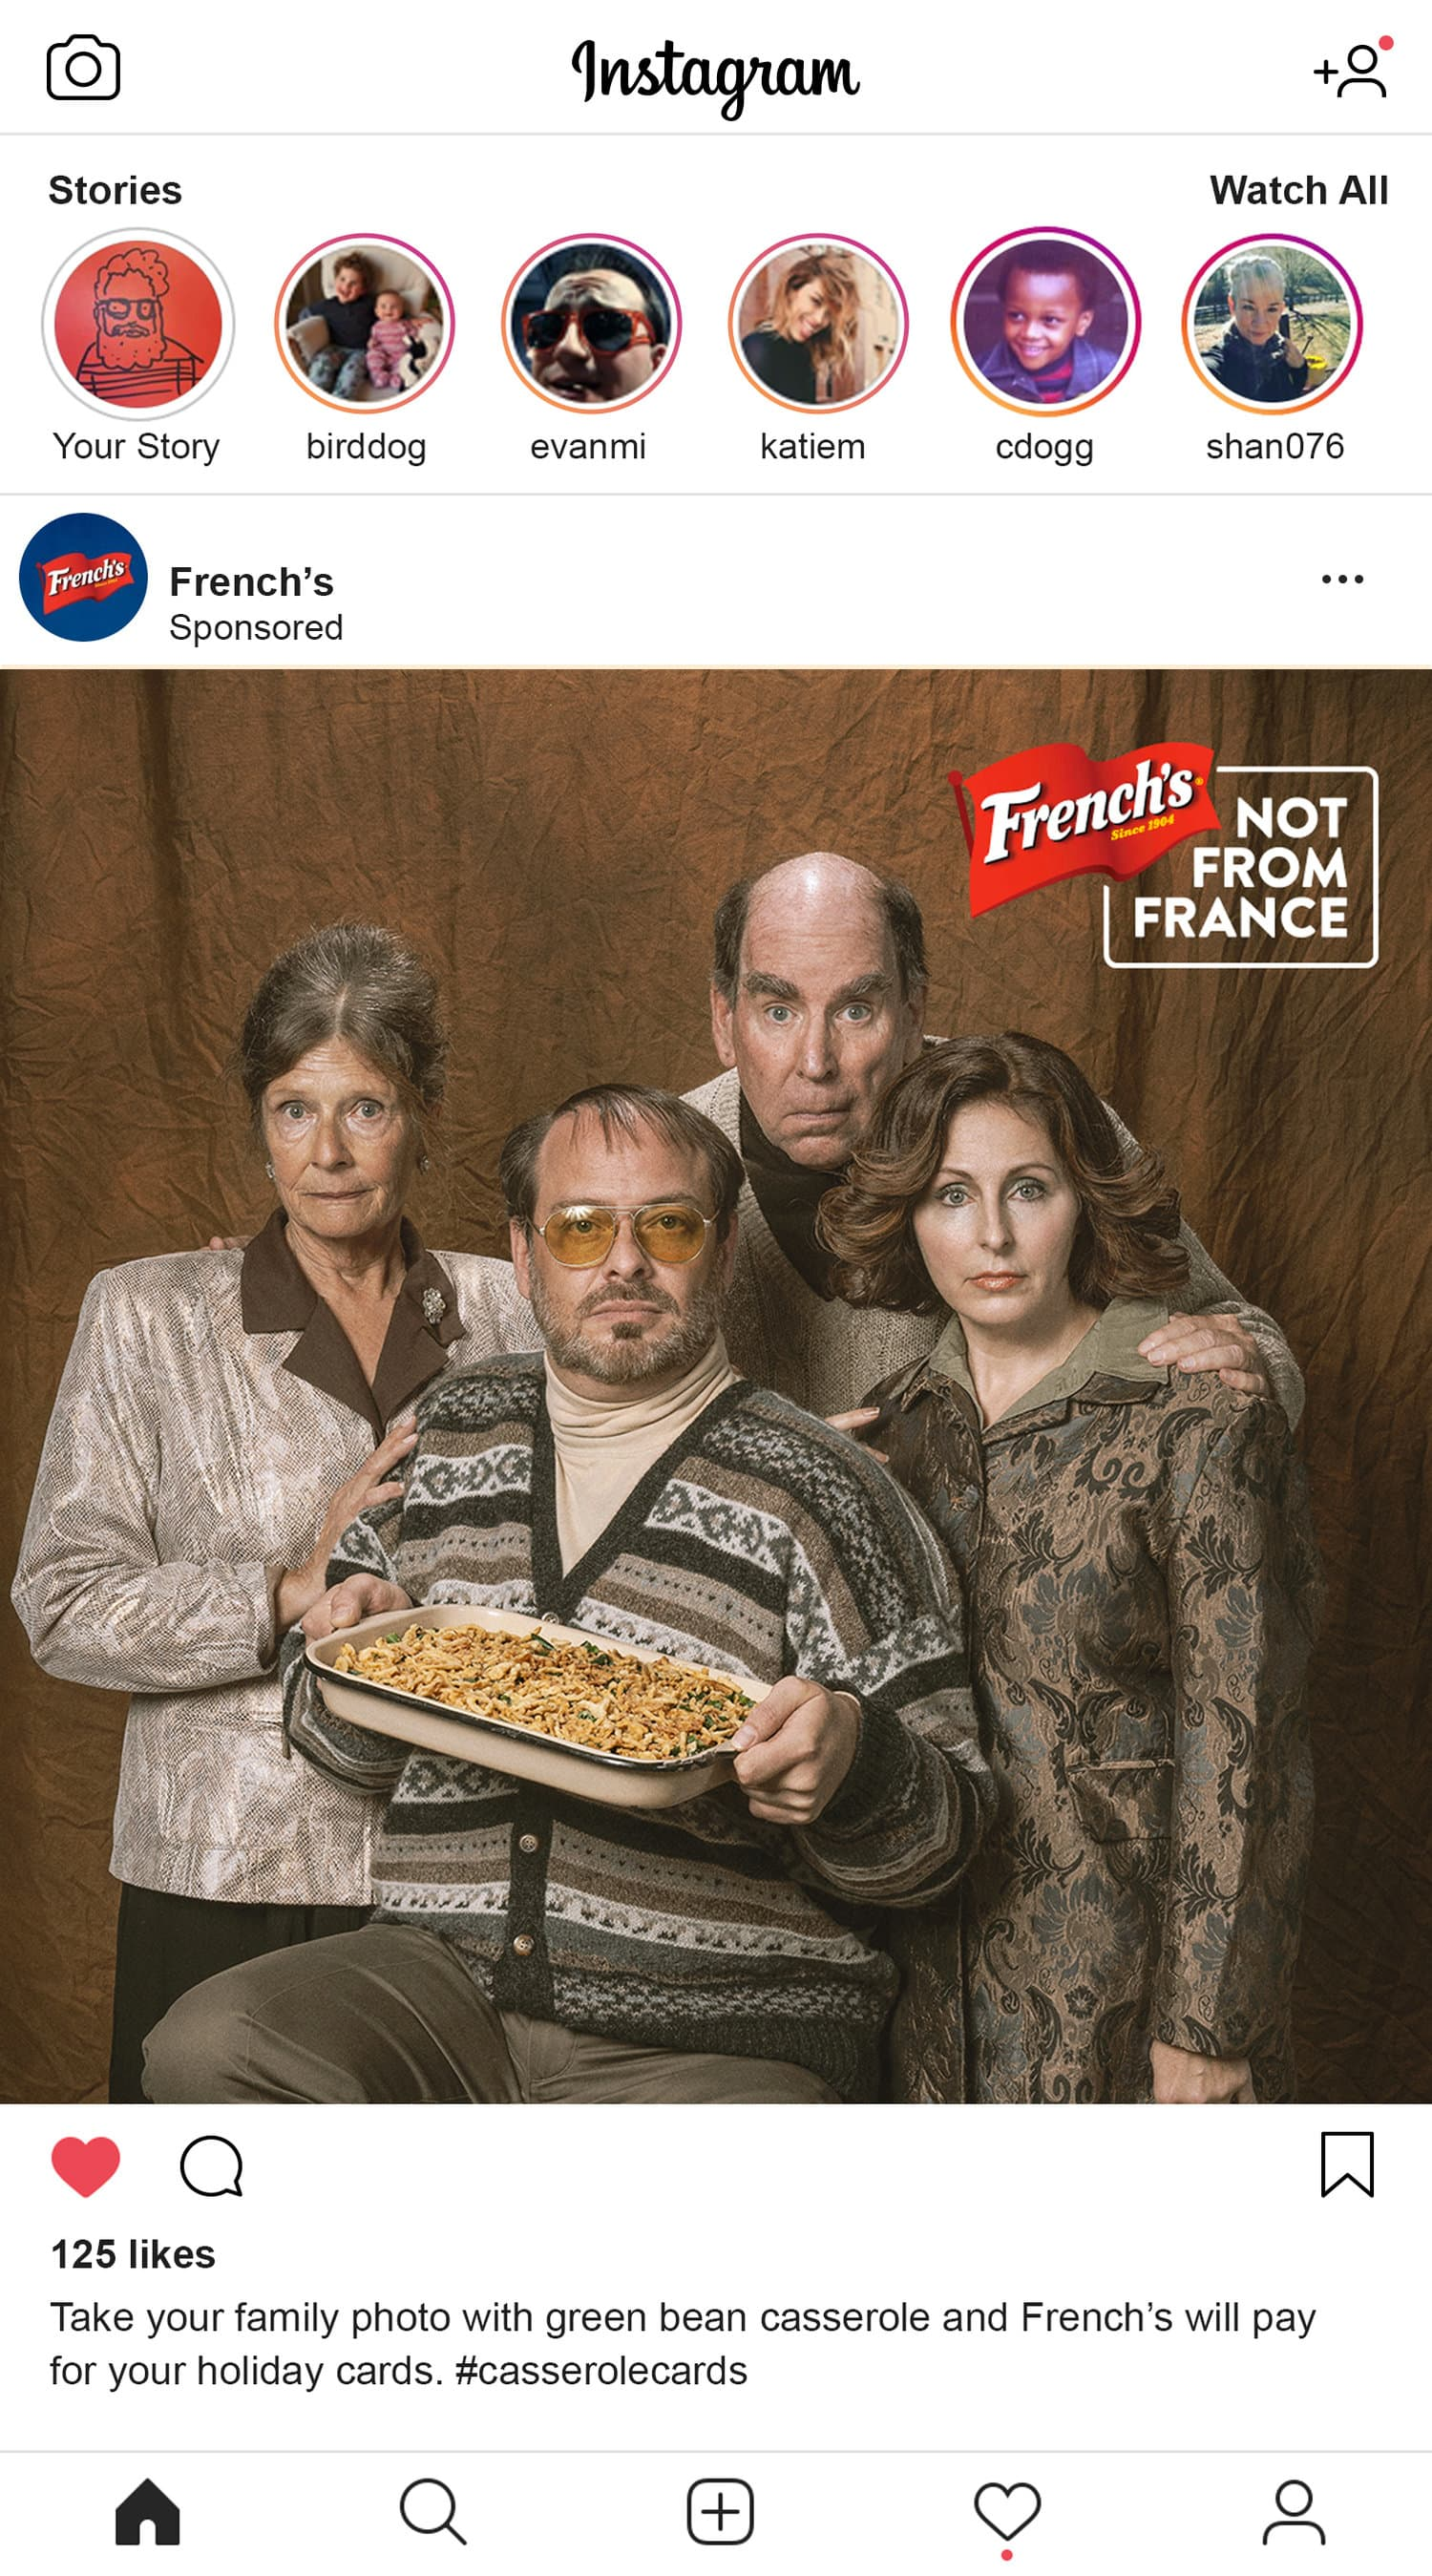 French's - Not From France